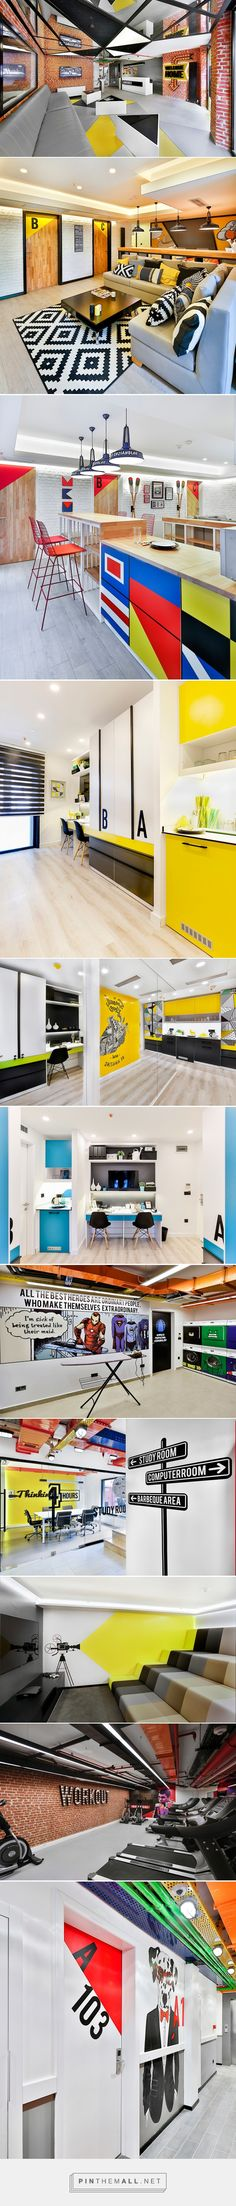 konforist edu.suites male dormitory by renda helin design - created via https://pinthemall.net